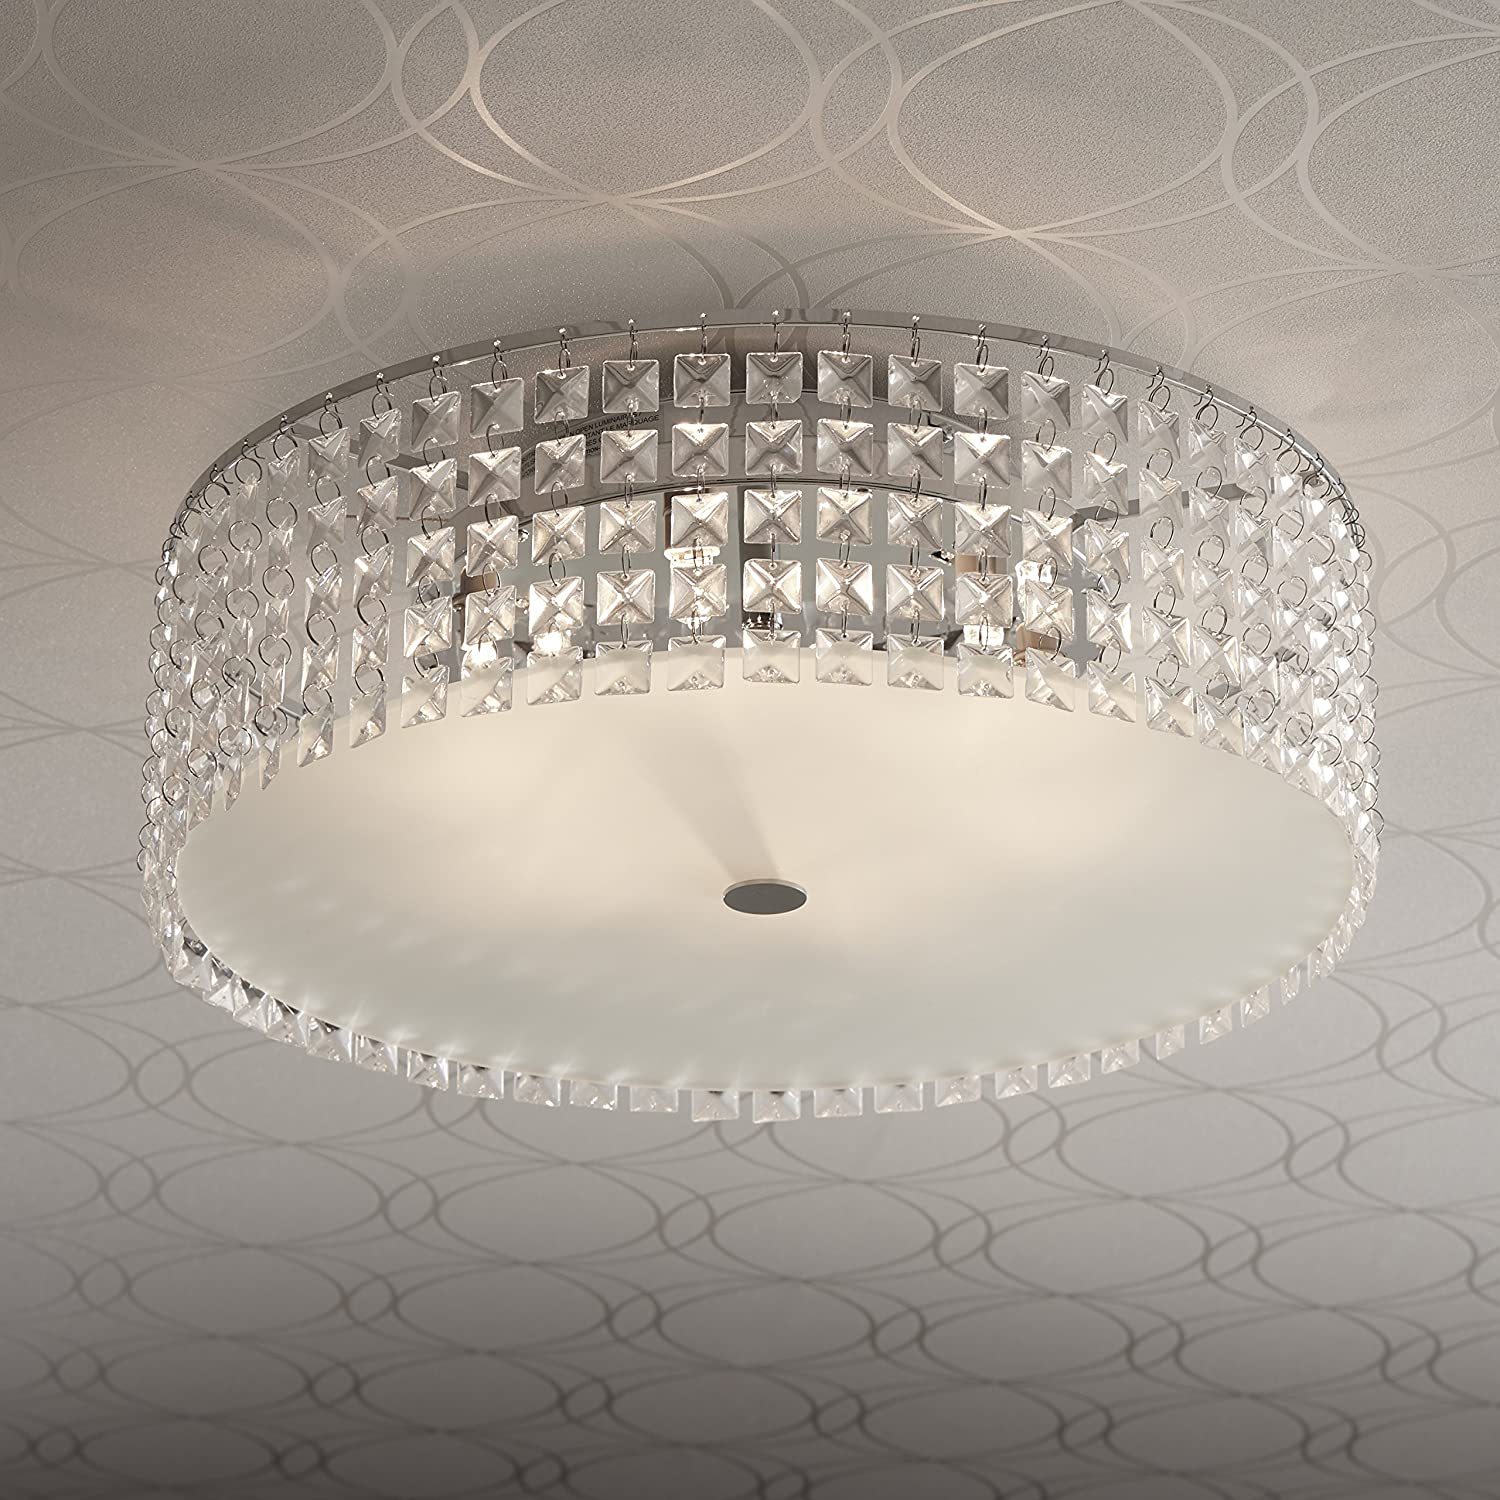 Bazz pl3416on decorative ceiling fixture dimmable easy installation bulbs included 16 chrome